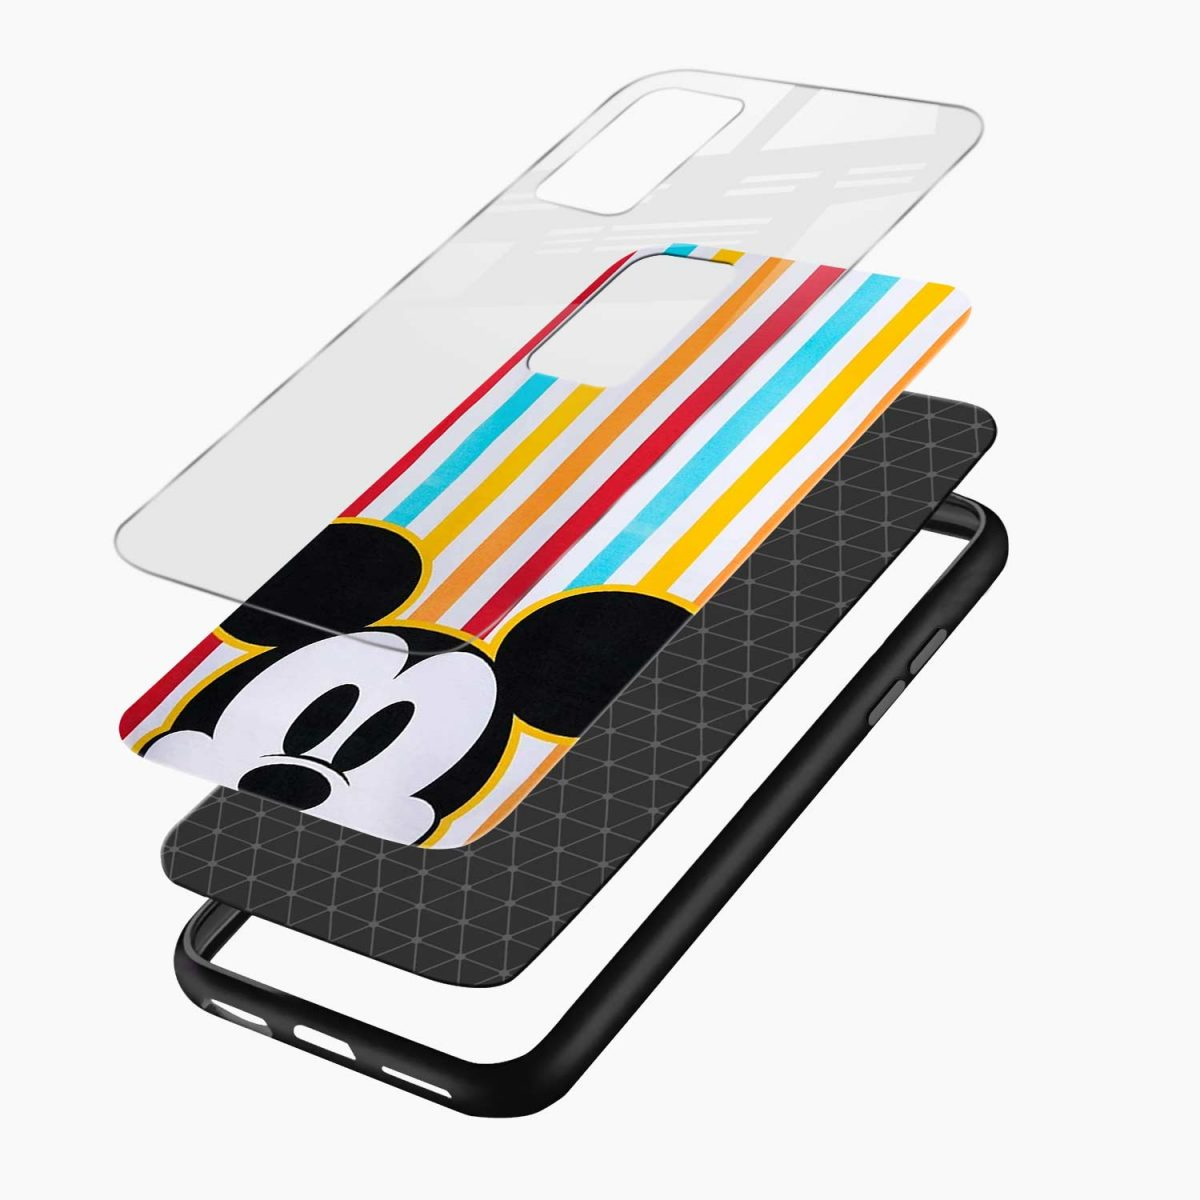 rigid spy mickey mouse layers view samsung galaxy note20 ultra back cover